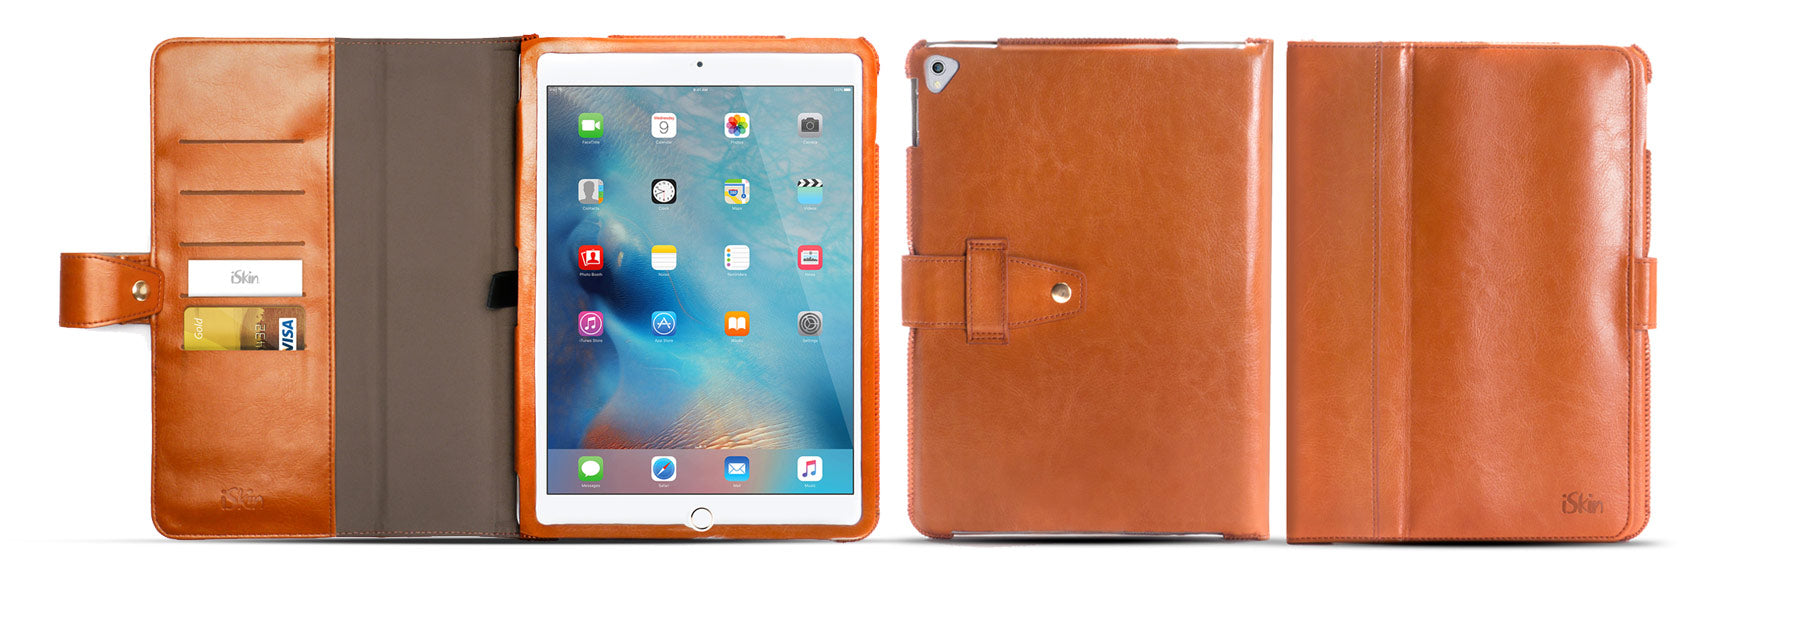 iSkin vera folio for iPad 9.7""